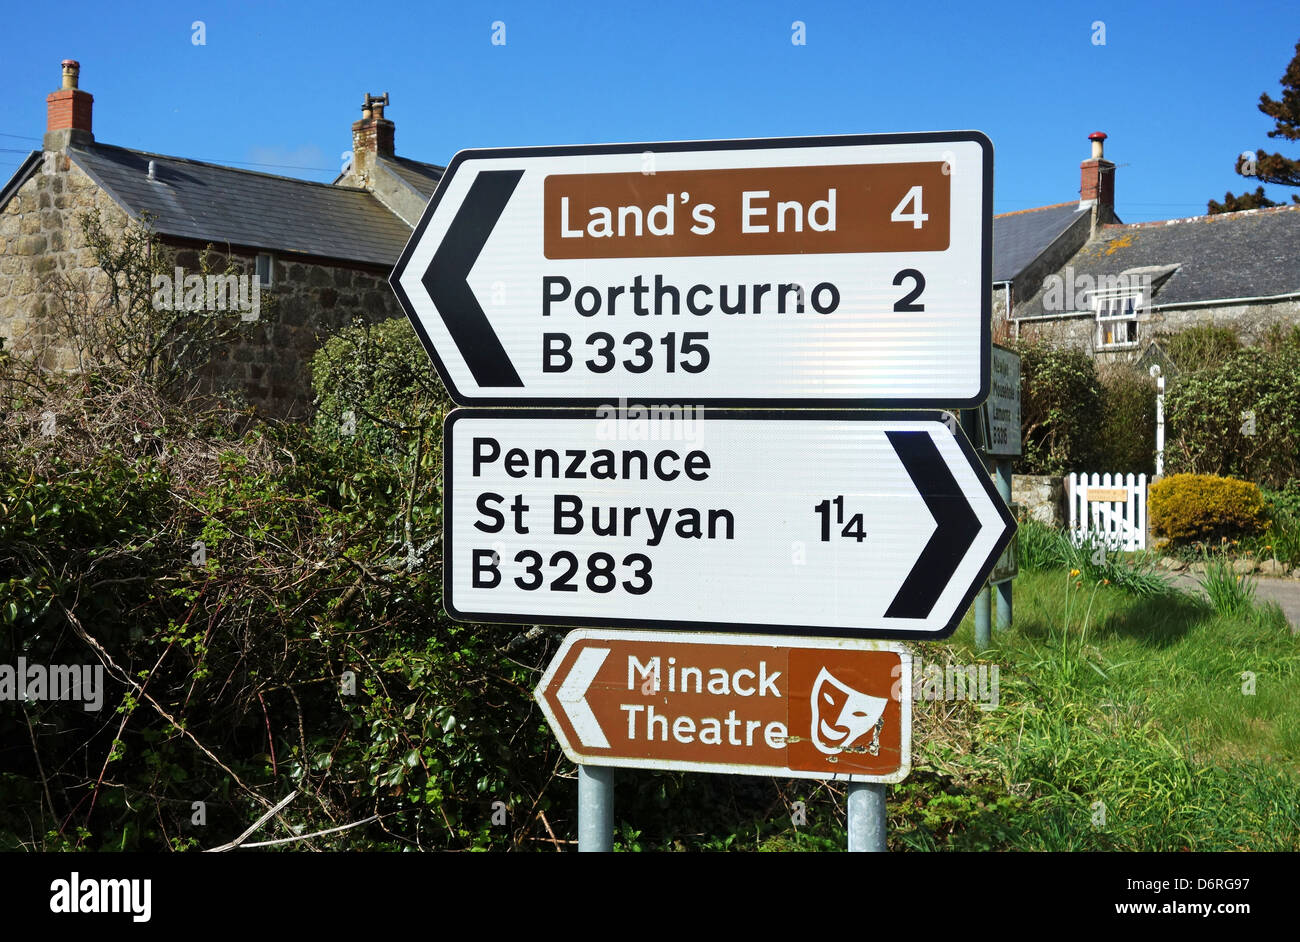 A roadside directions sign near Penzance in Cornwall, UK - Stock Image